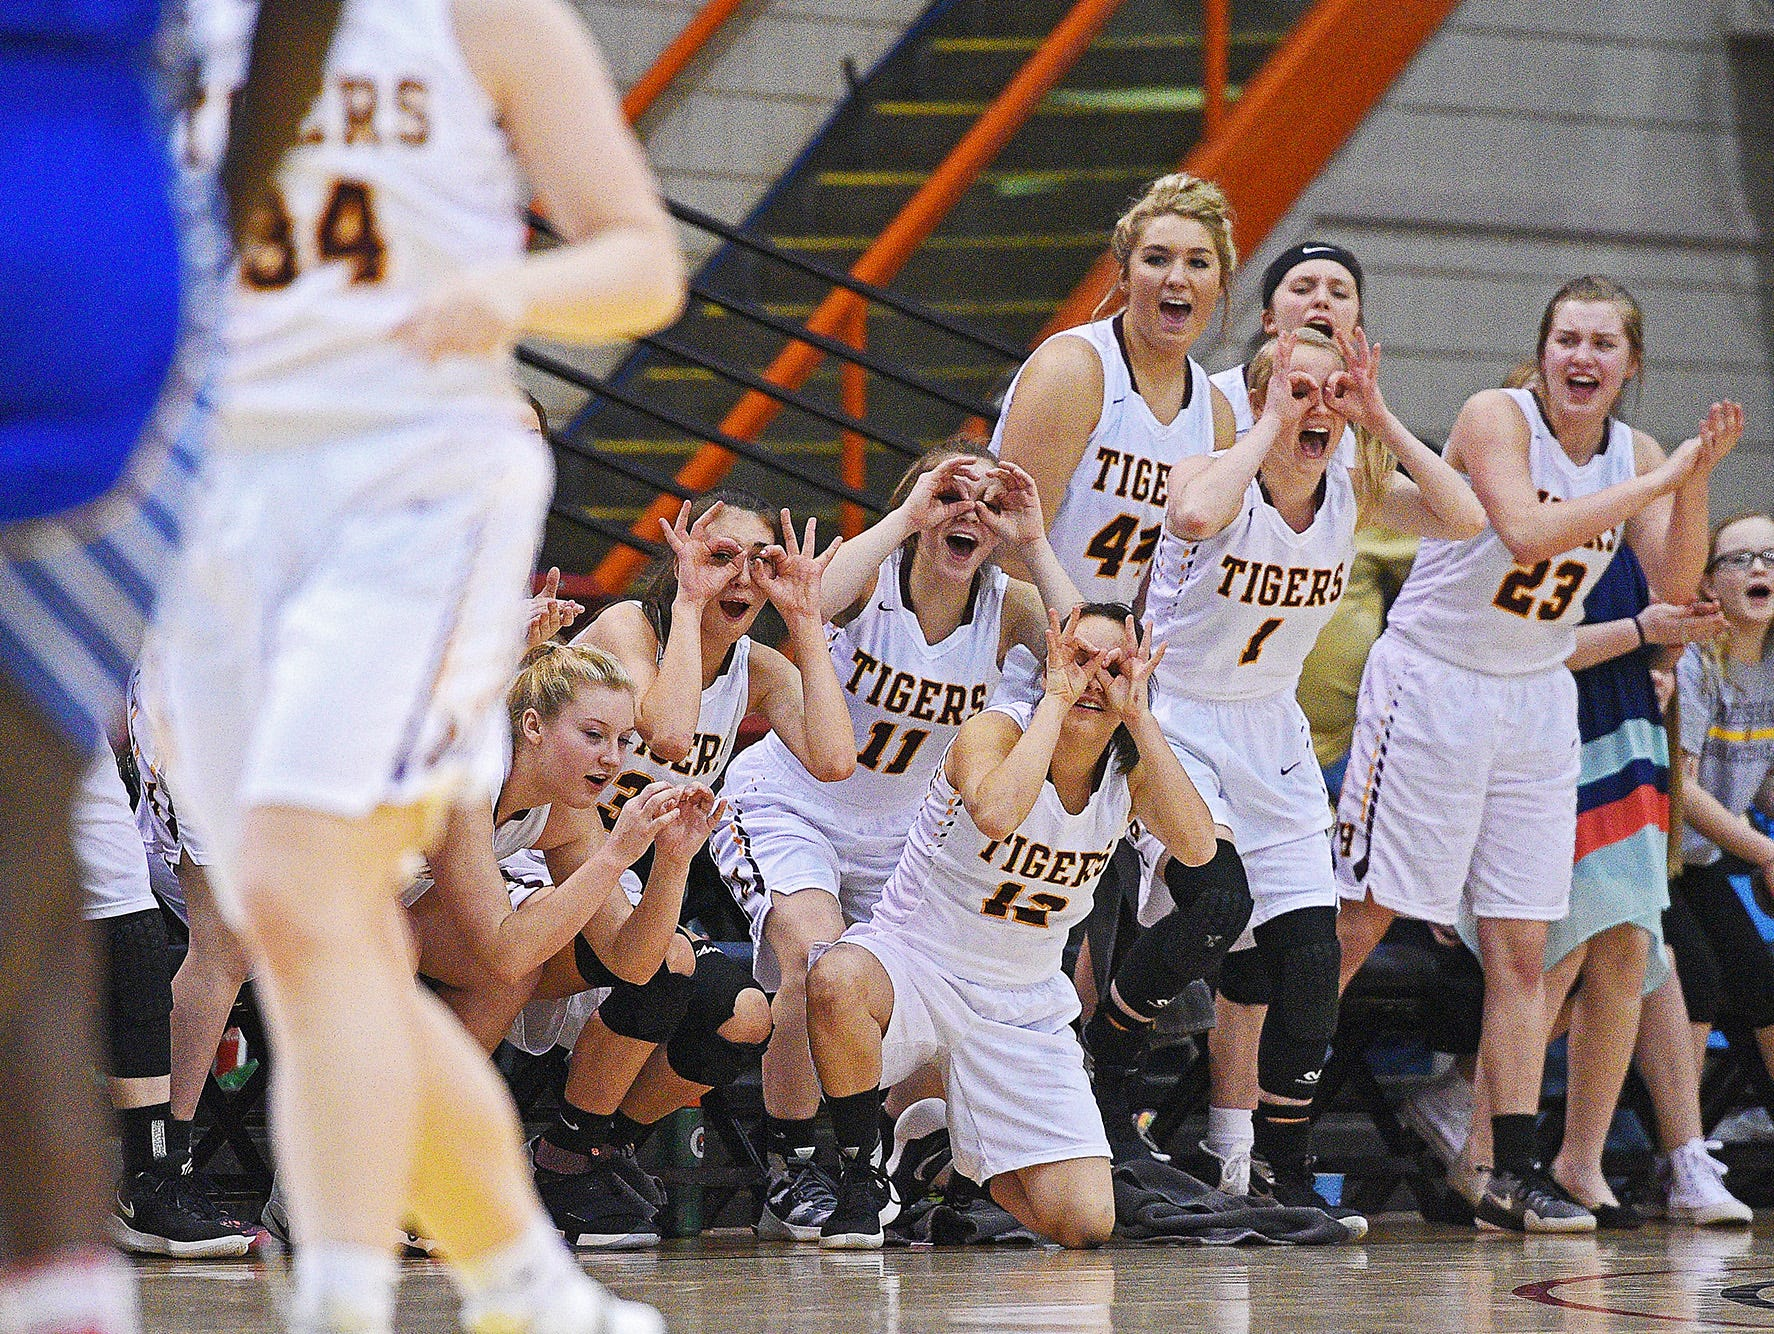 Harrisburg players react from the bench after a teammate scored during the 2017 SDHSAA Class AA State Girls Basketball championship game against O'Gorman Saturday, March 18, 2017, at Rushmore Plaza Civic Center in Rapid City.